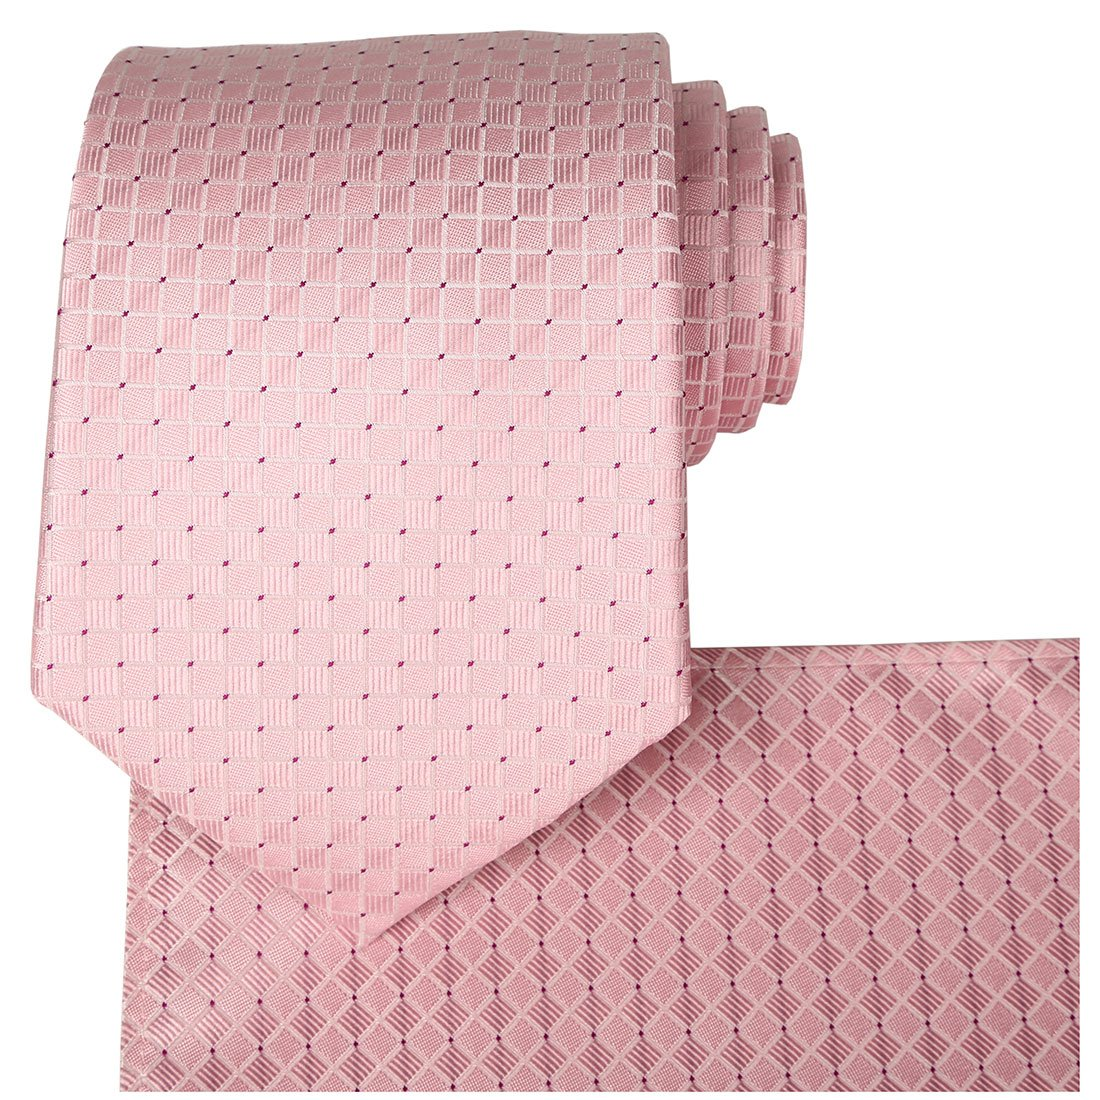 KissTies Rosy Pink Solid Tie Set Wedding Necktie + Pocket Square + Gift Box